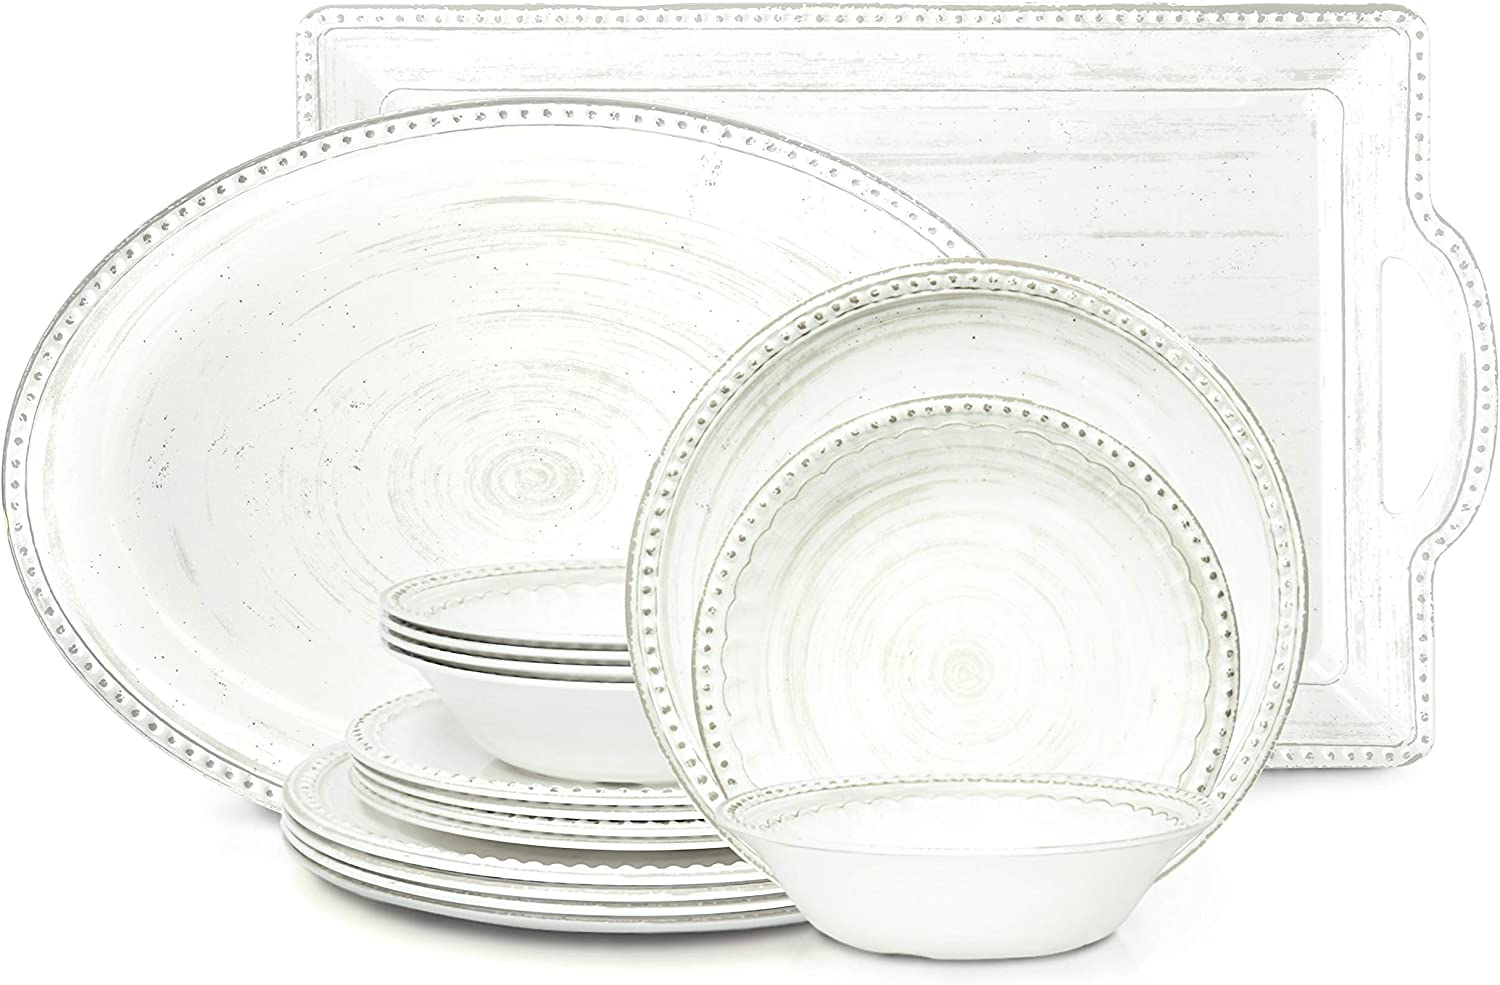 Zak Designs French Country House Melamine 14 Piece Dinnerware Set Includes Dinner, Salad Plates, Bowls, Serving Platter and Tray (Lavage Oyster)